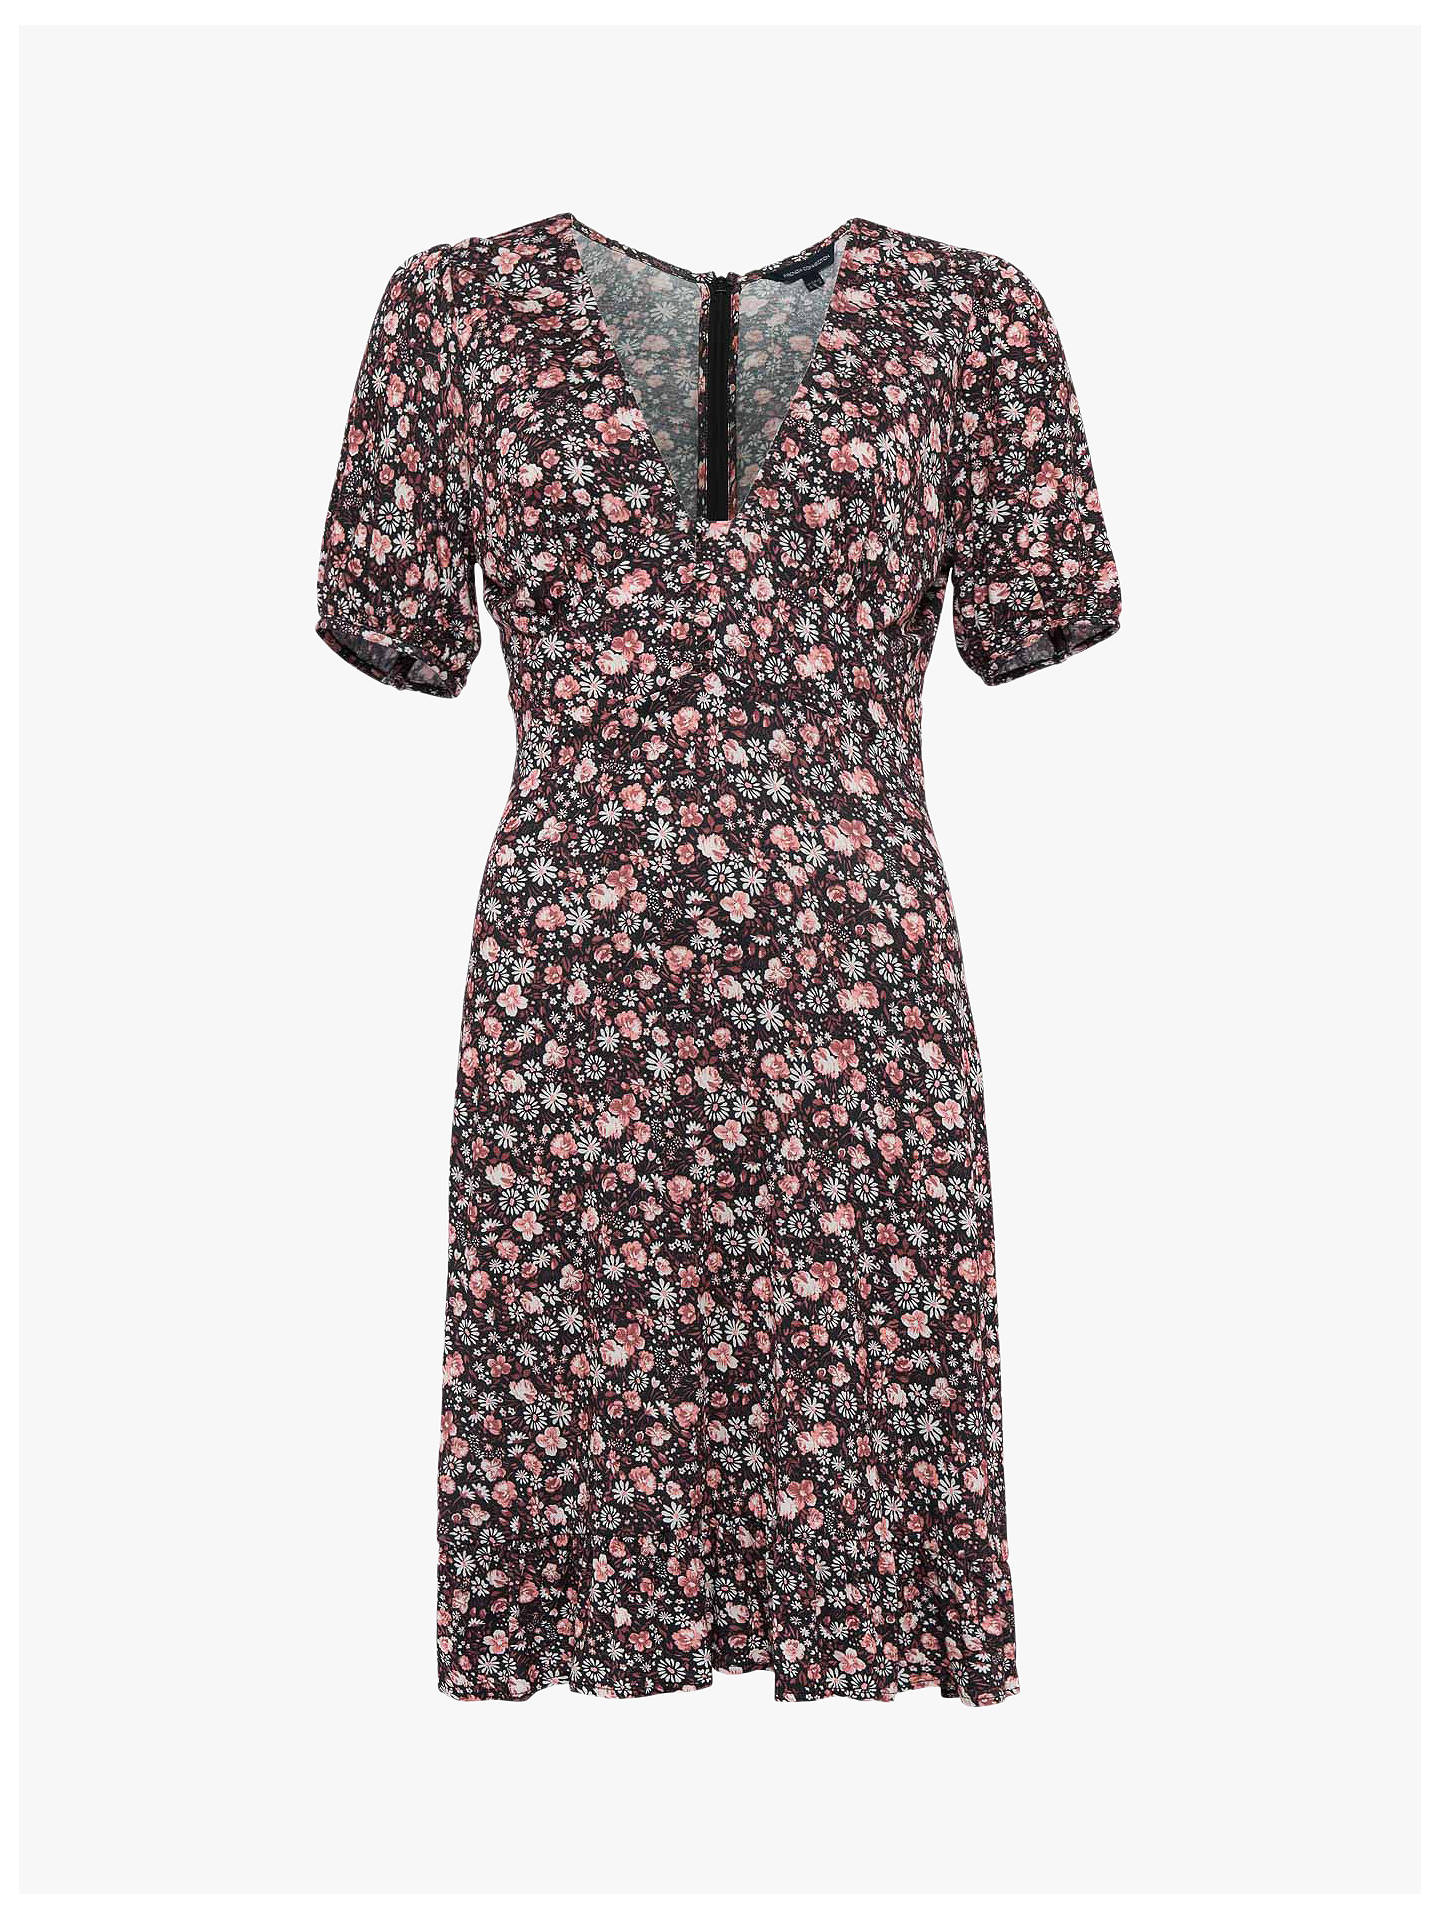 Buy French Connection Fauna Meadow Dress, Black/Multi, 10 Online at johnlewis.com